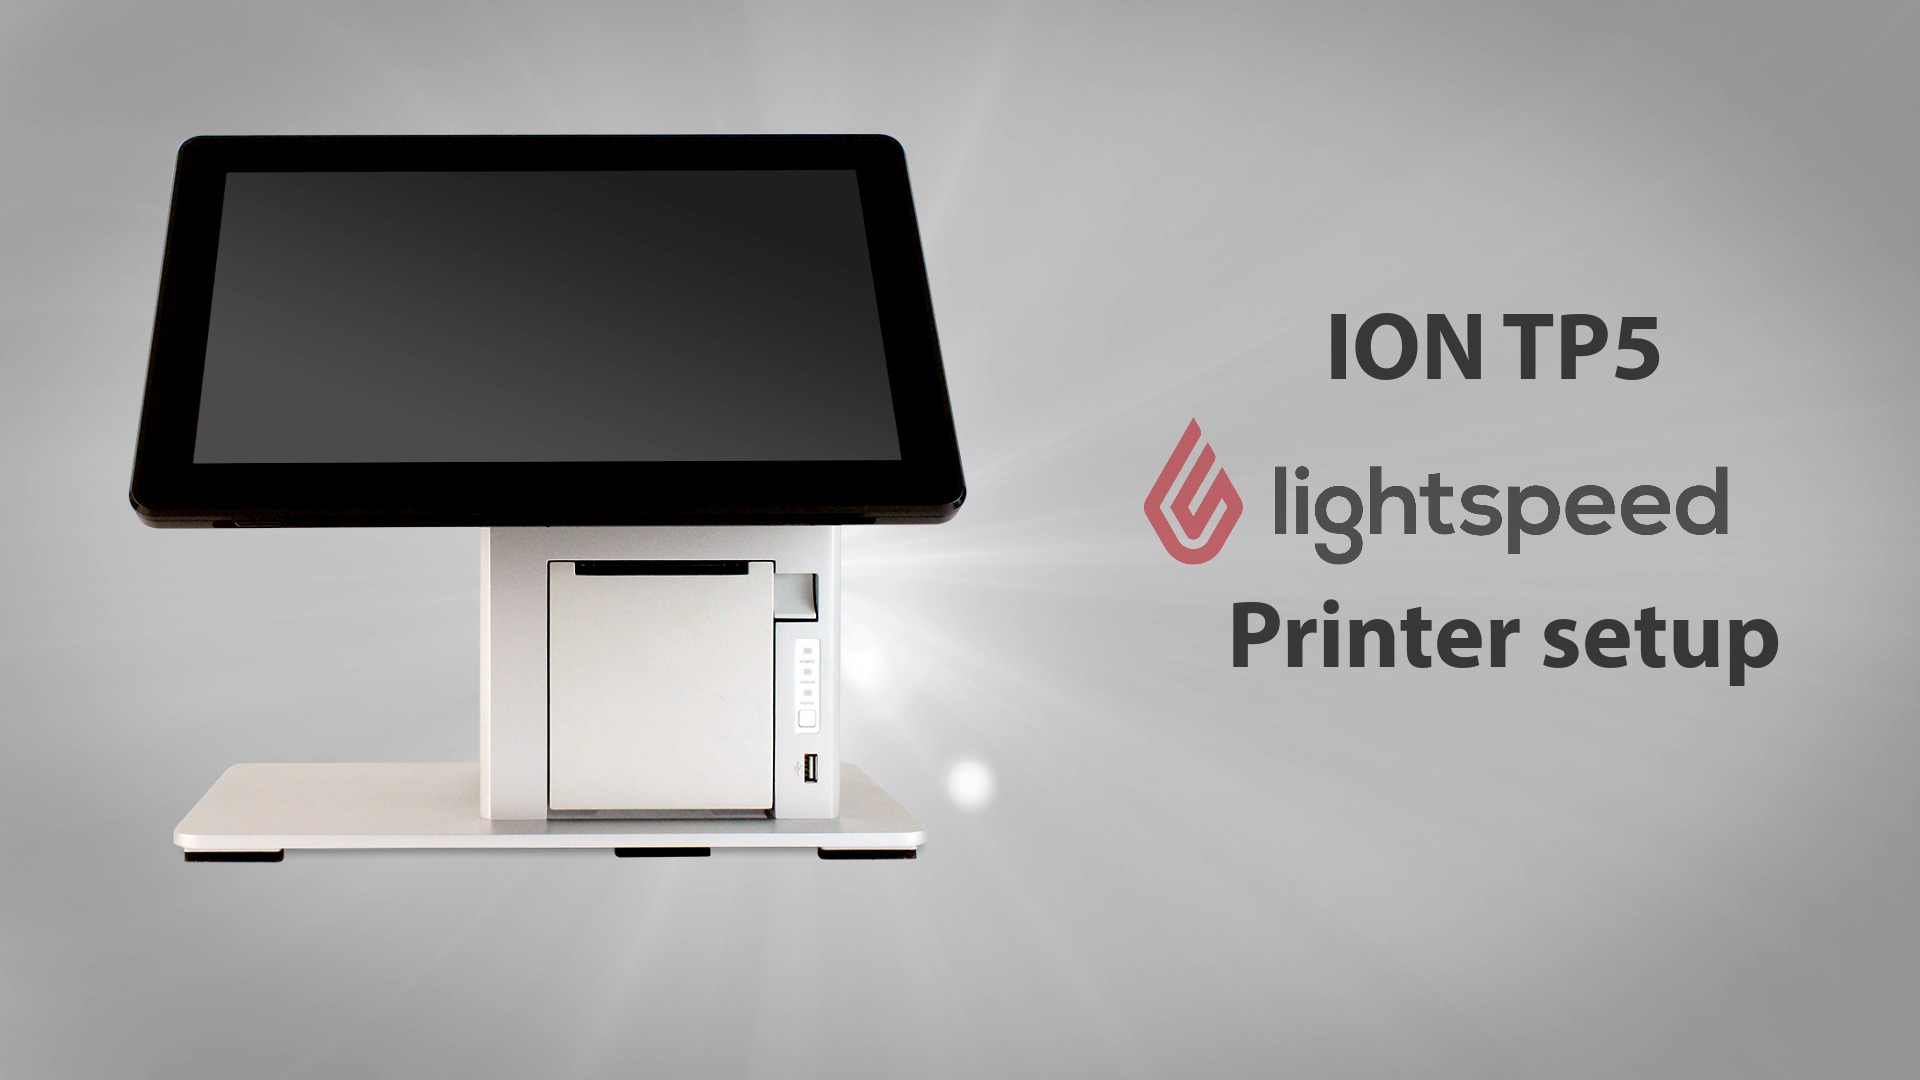 25 Jul ION TP5 Lightspeed POS Printer Setup